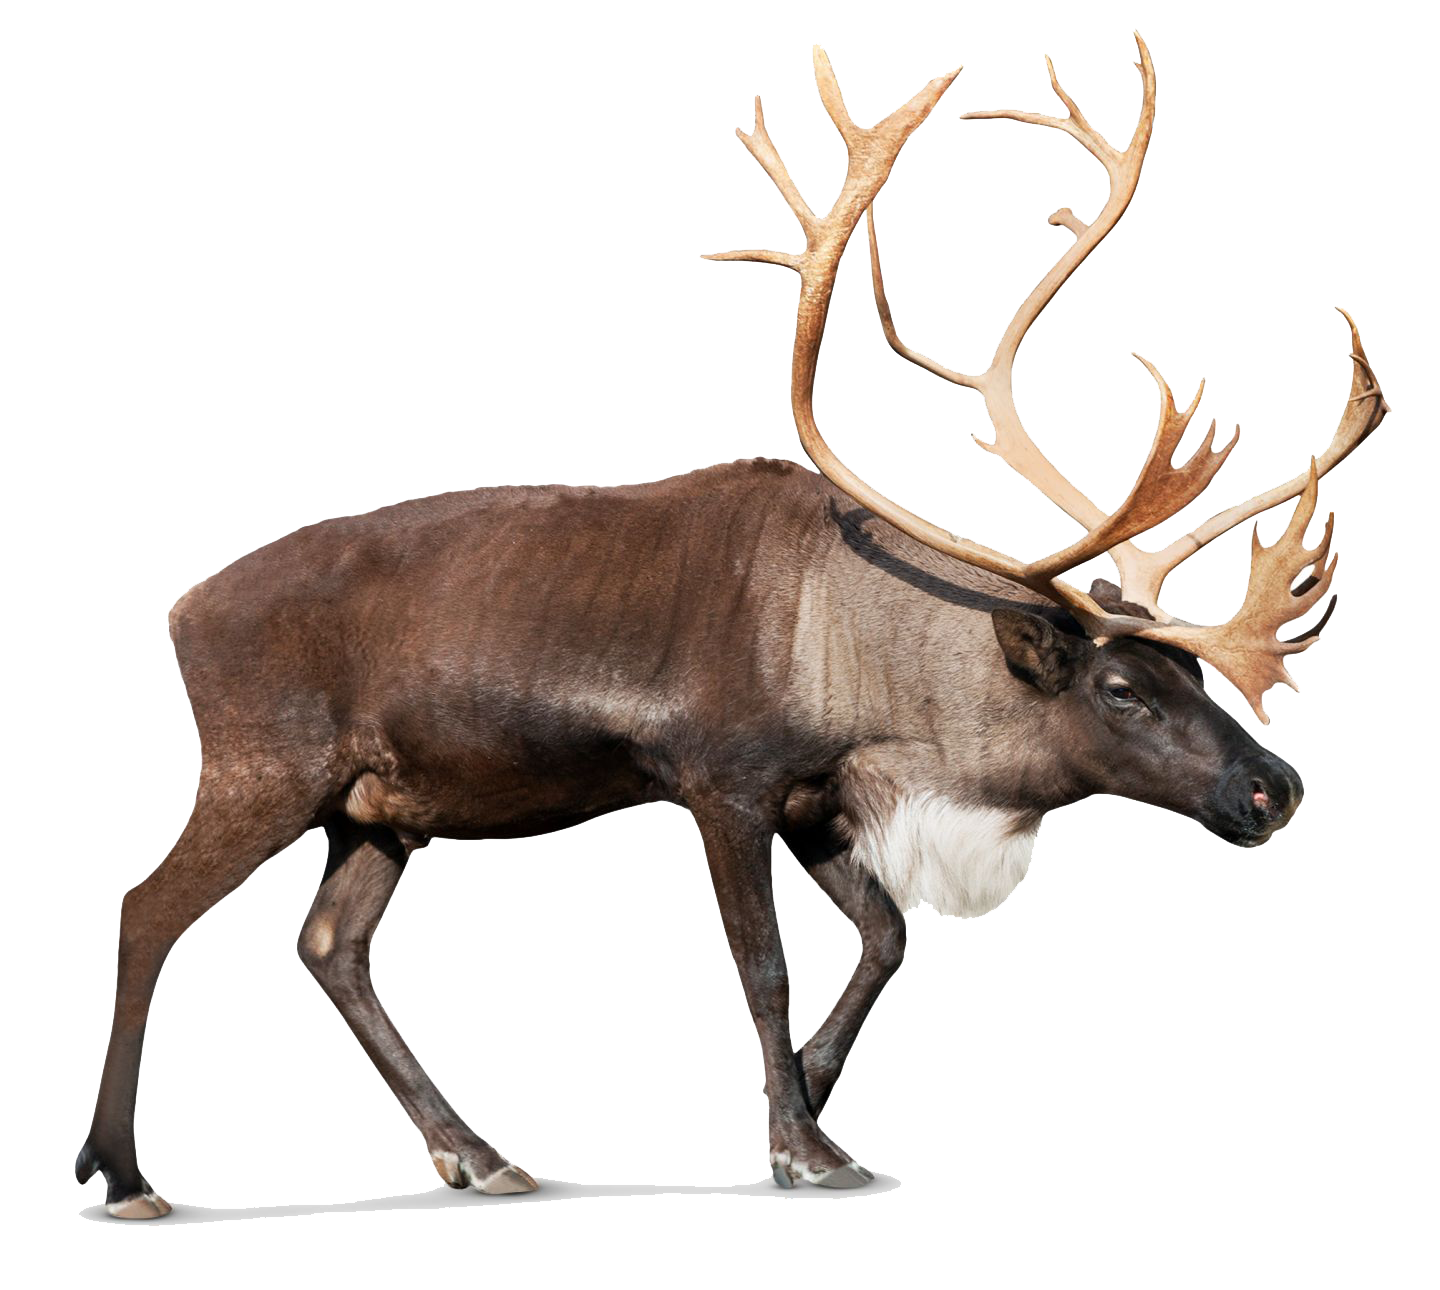 Transparent images pluspng photos. Reindeer antlers png tumblr banner free download